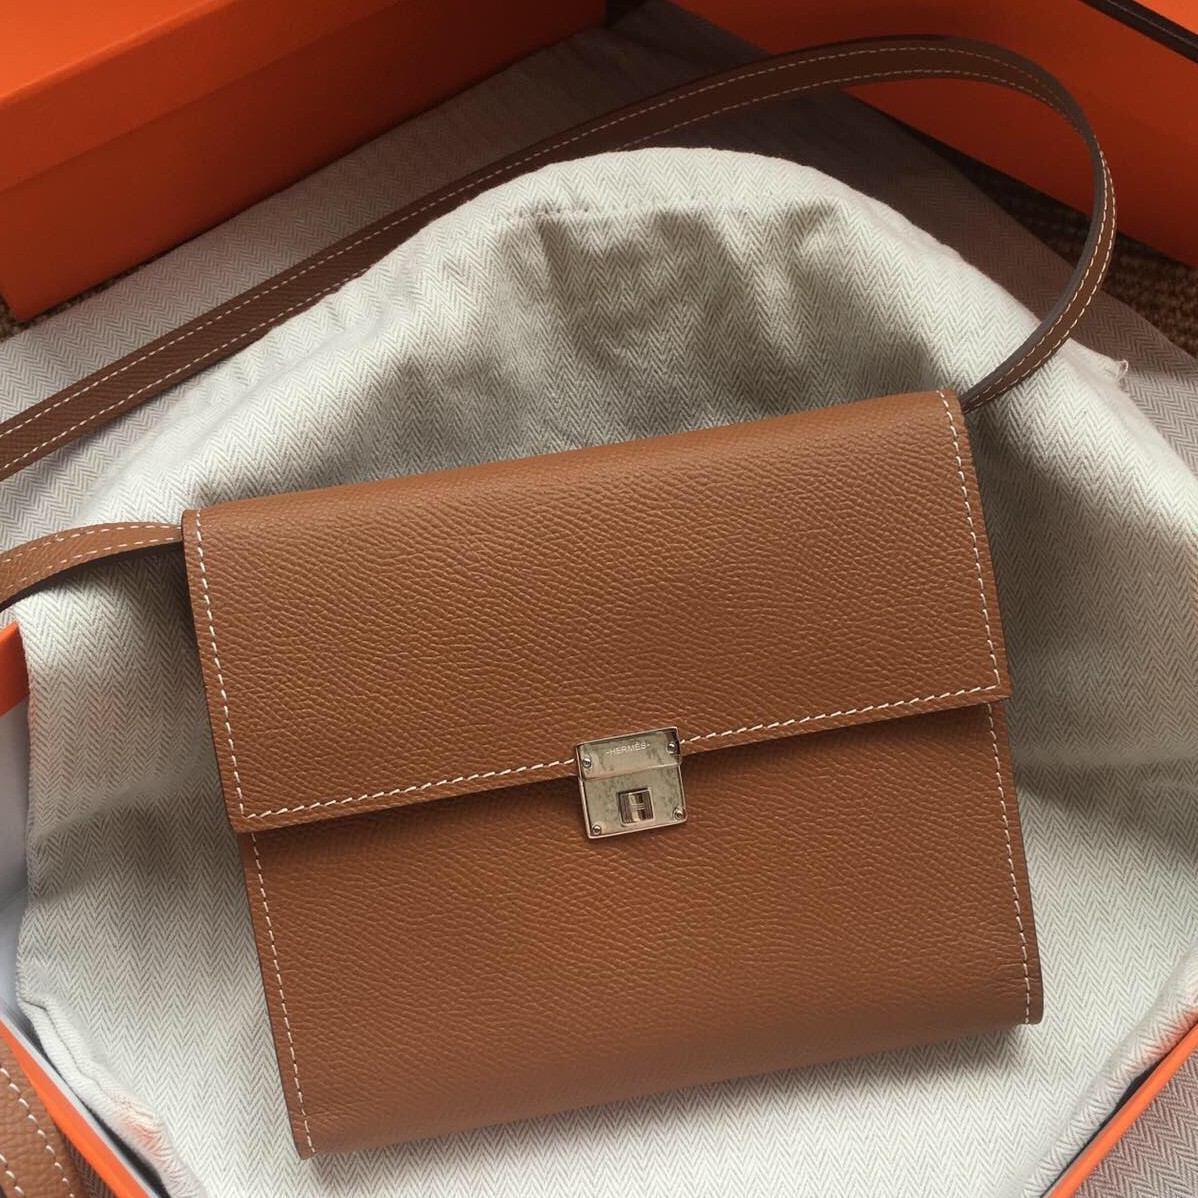 Replica Perfect Hermes Brown Clic 16 Wallet With Strap